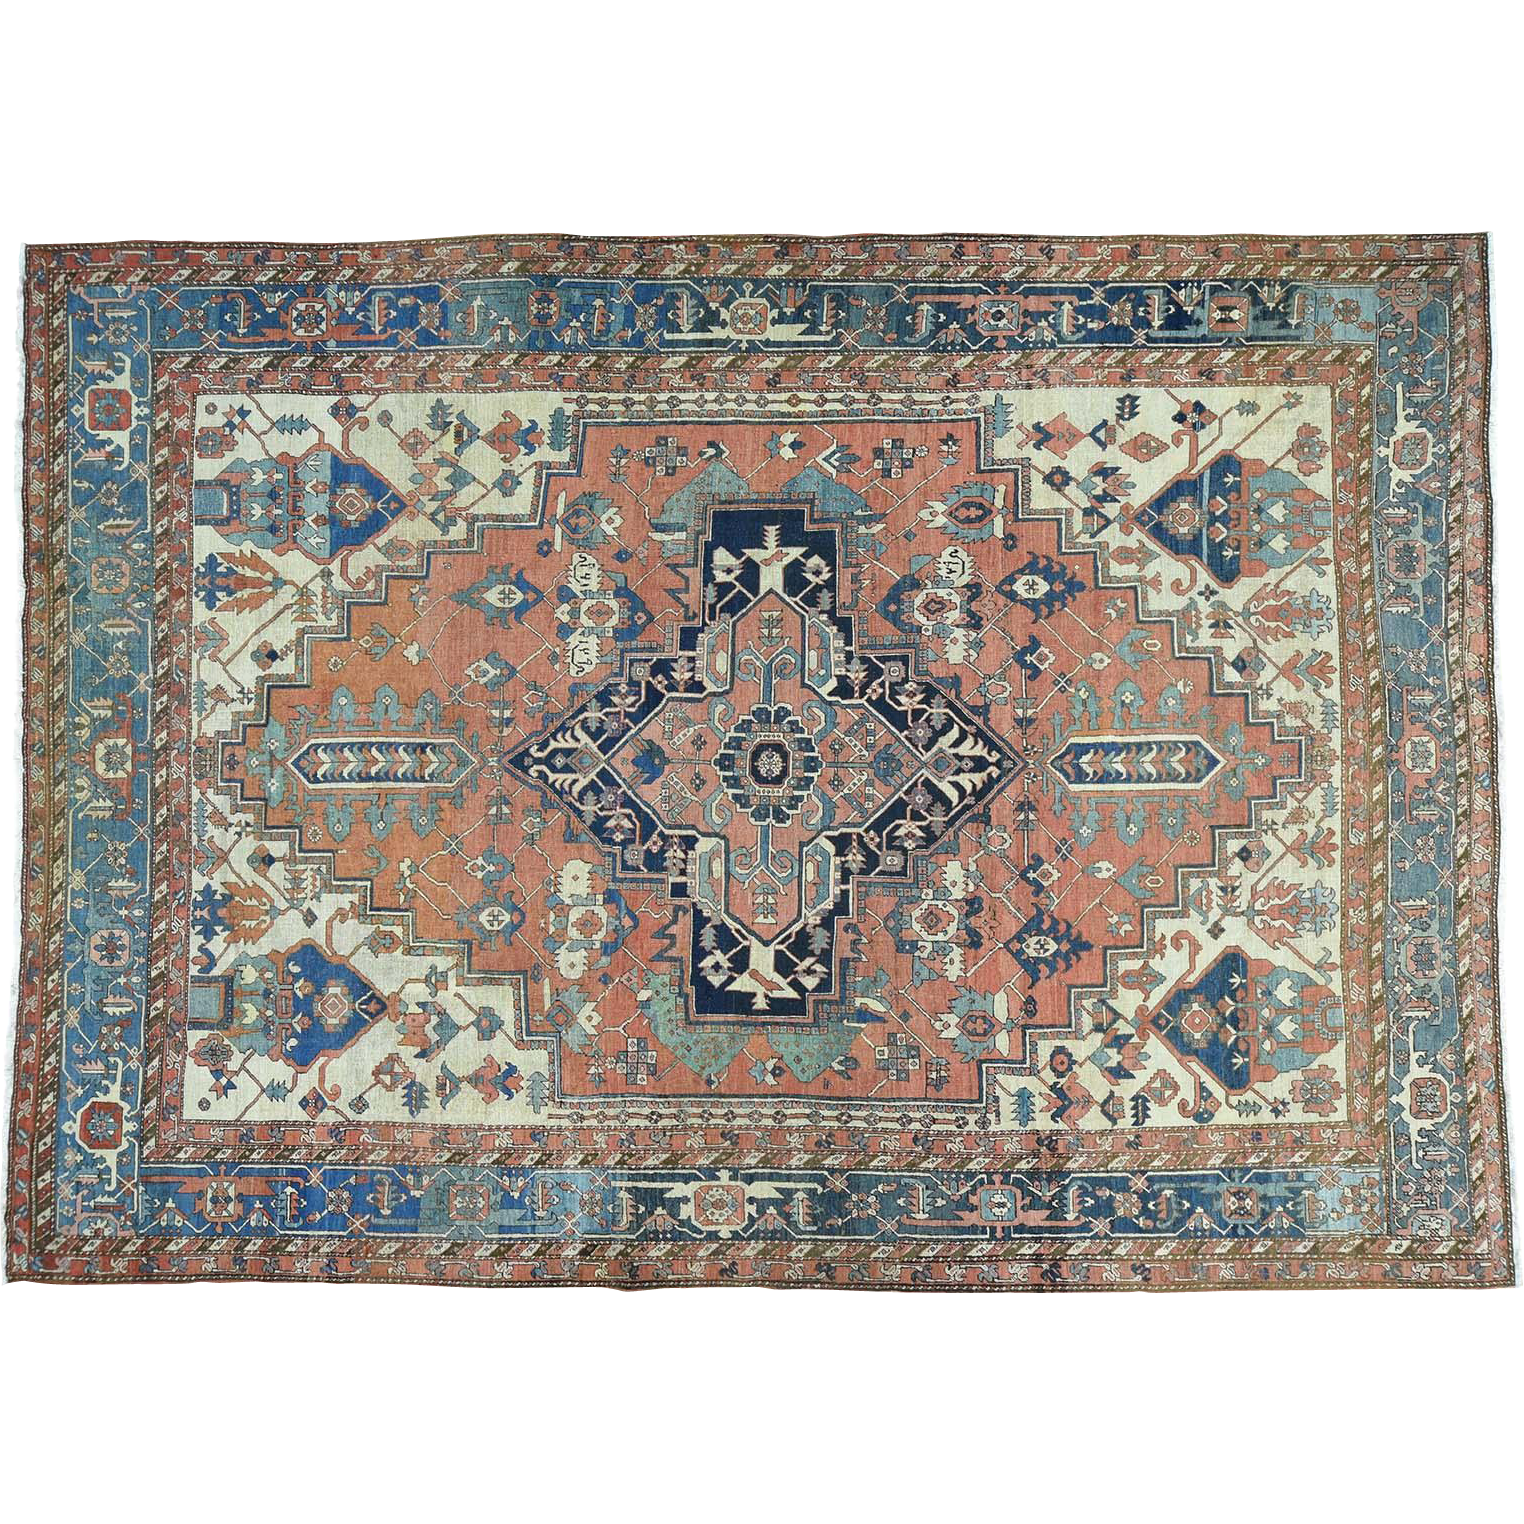 Oriental Rugs Red Bank Nj: Hand-Knotted Oversize Antique Persian Serapi Oriental Rug